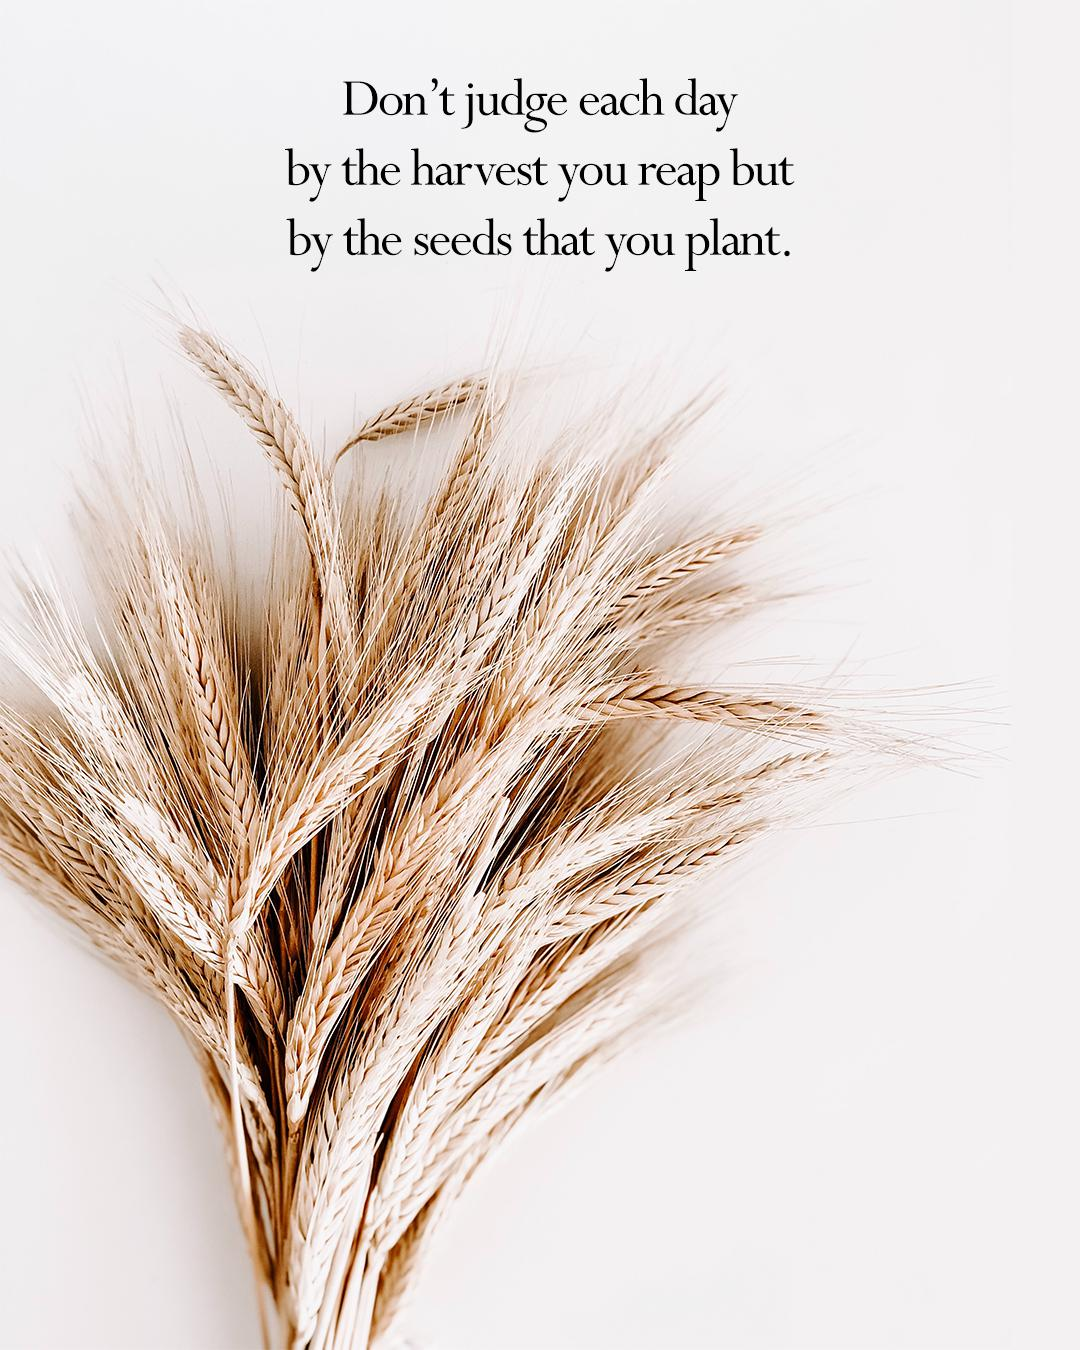 Don't Judge Each Day By The Harvest You Reap But By The Seeds That You Plant. https://inspirational.ly